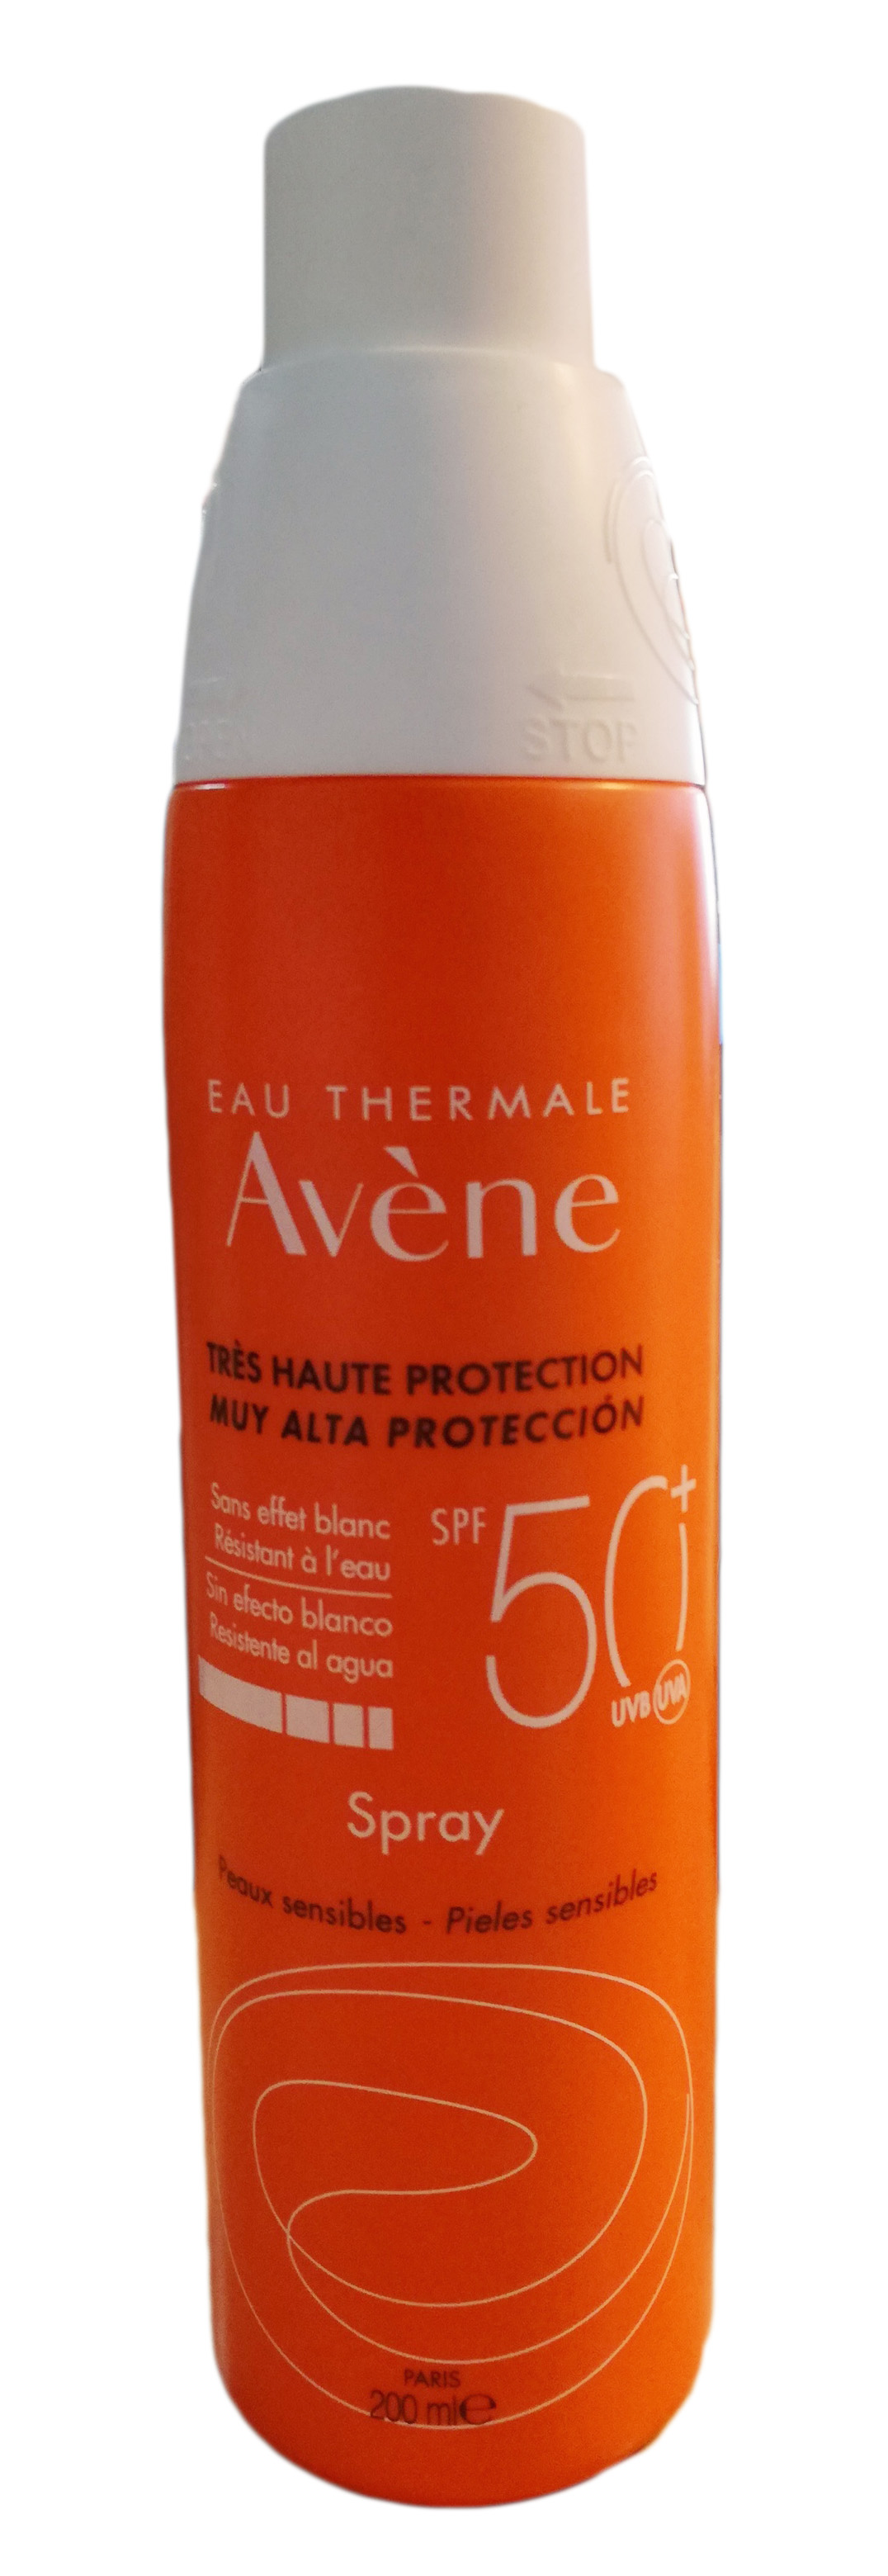 Avene Spray 200ml SPF50+